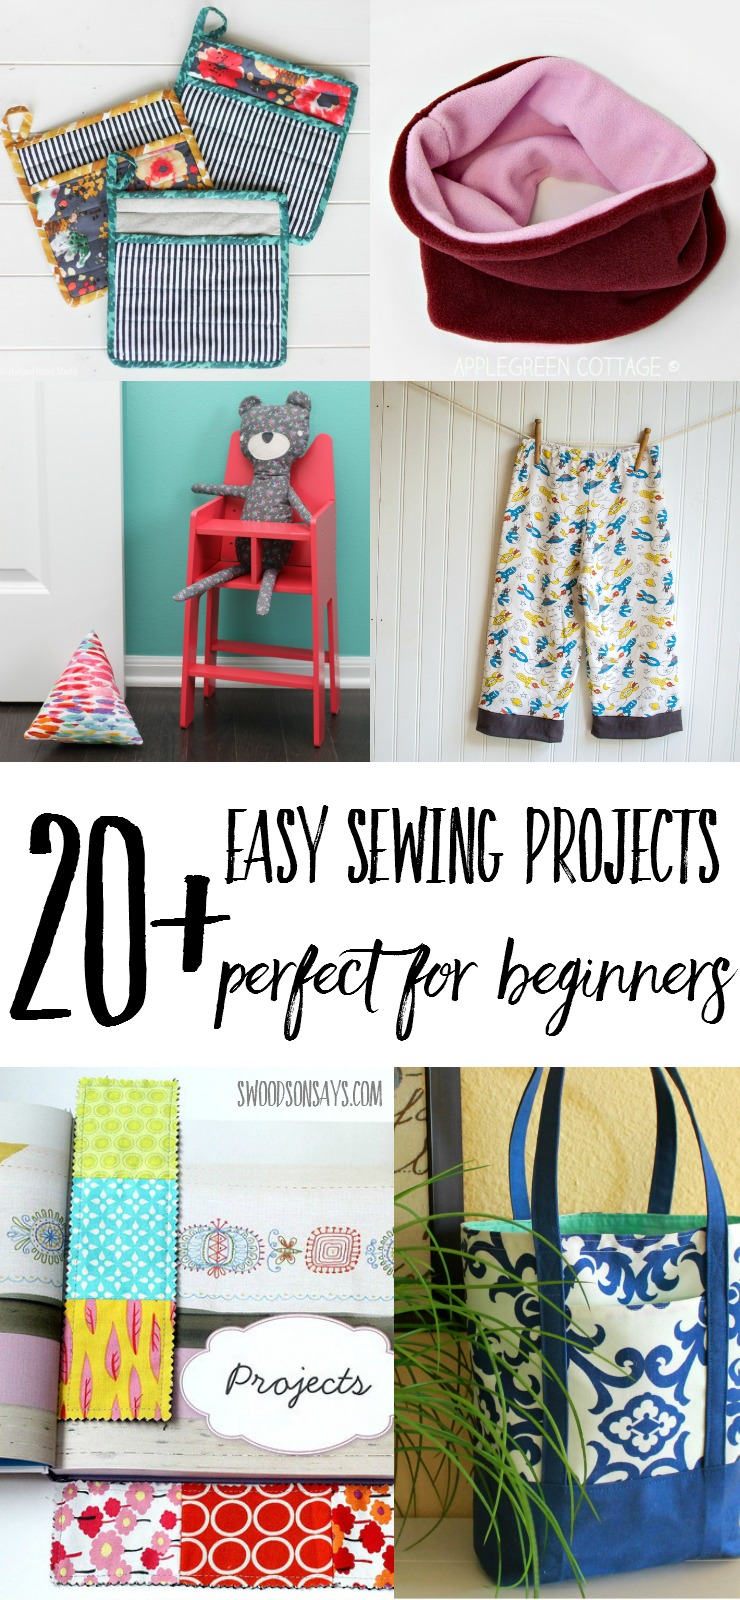 A big list of beginner sewing projects that are fun and easy to make! Simple sewing tutorials with pictures to help along the way, there is a beginner sewing project for everyone on this list!